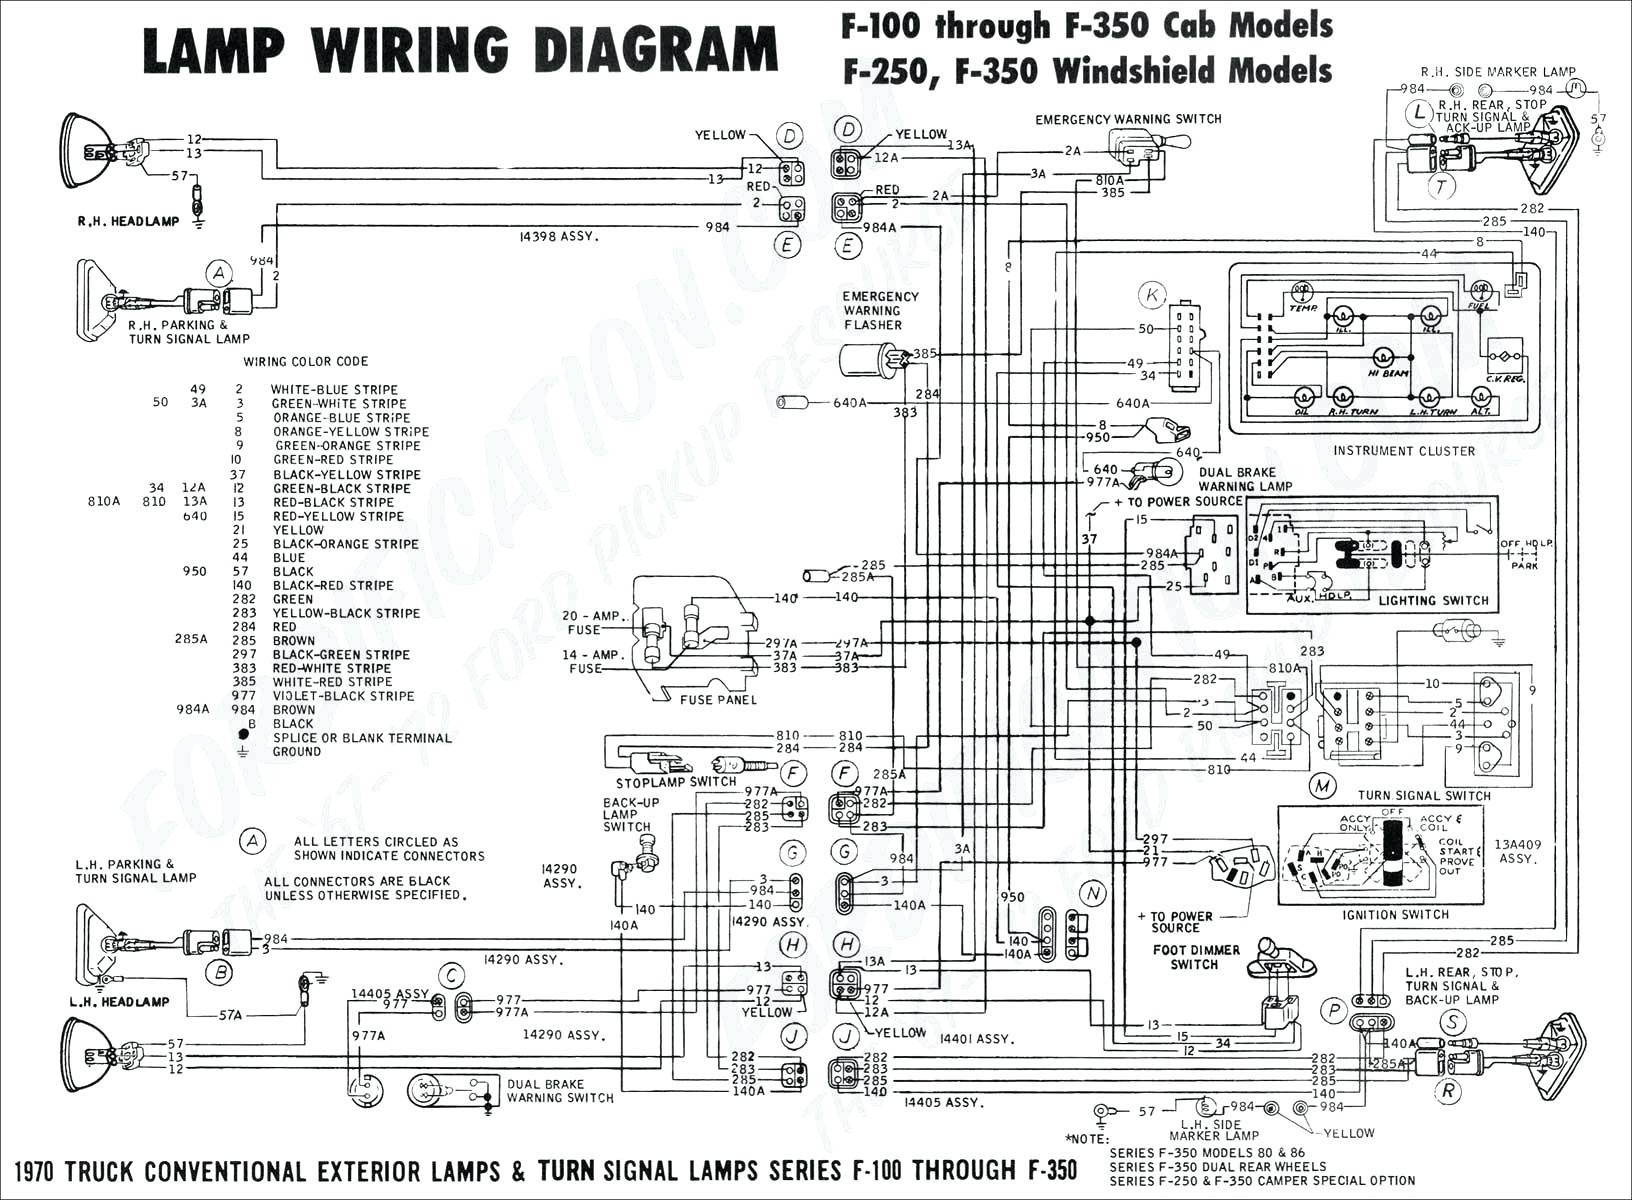 Diagram 2007 F250 Wiring Diagram Full Version Hd Quality Wiring Diagram Stvfuse8449 Itcmolari It